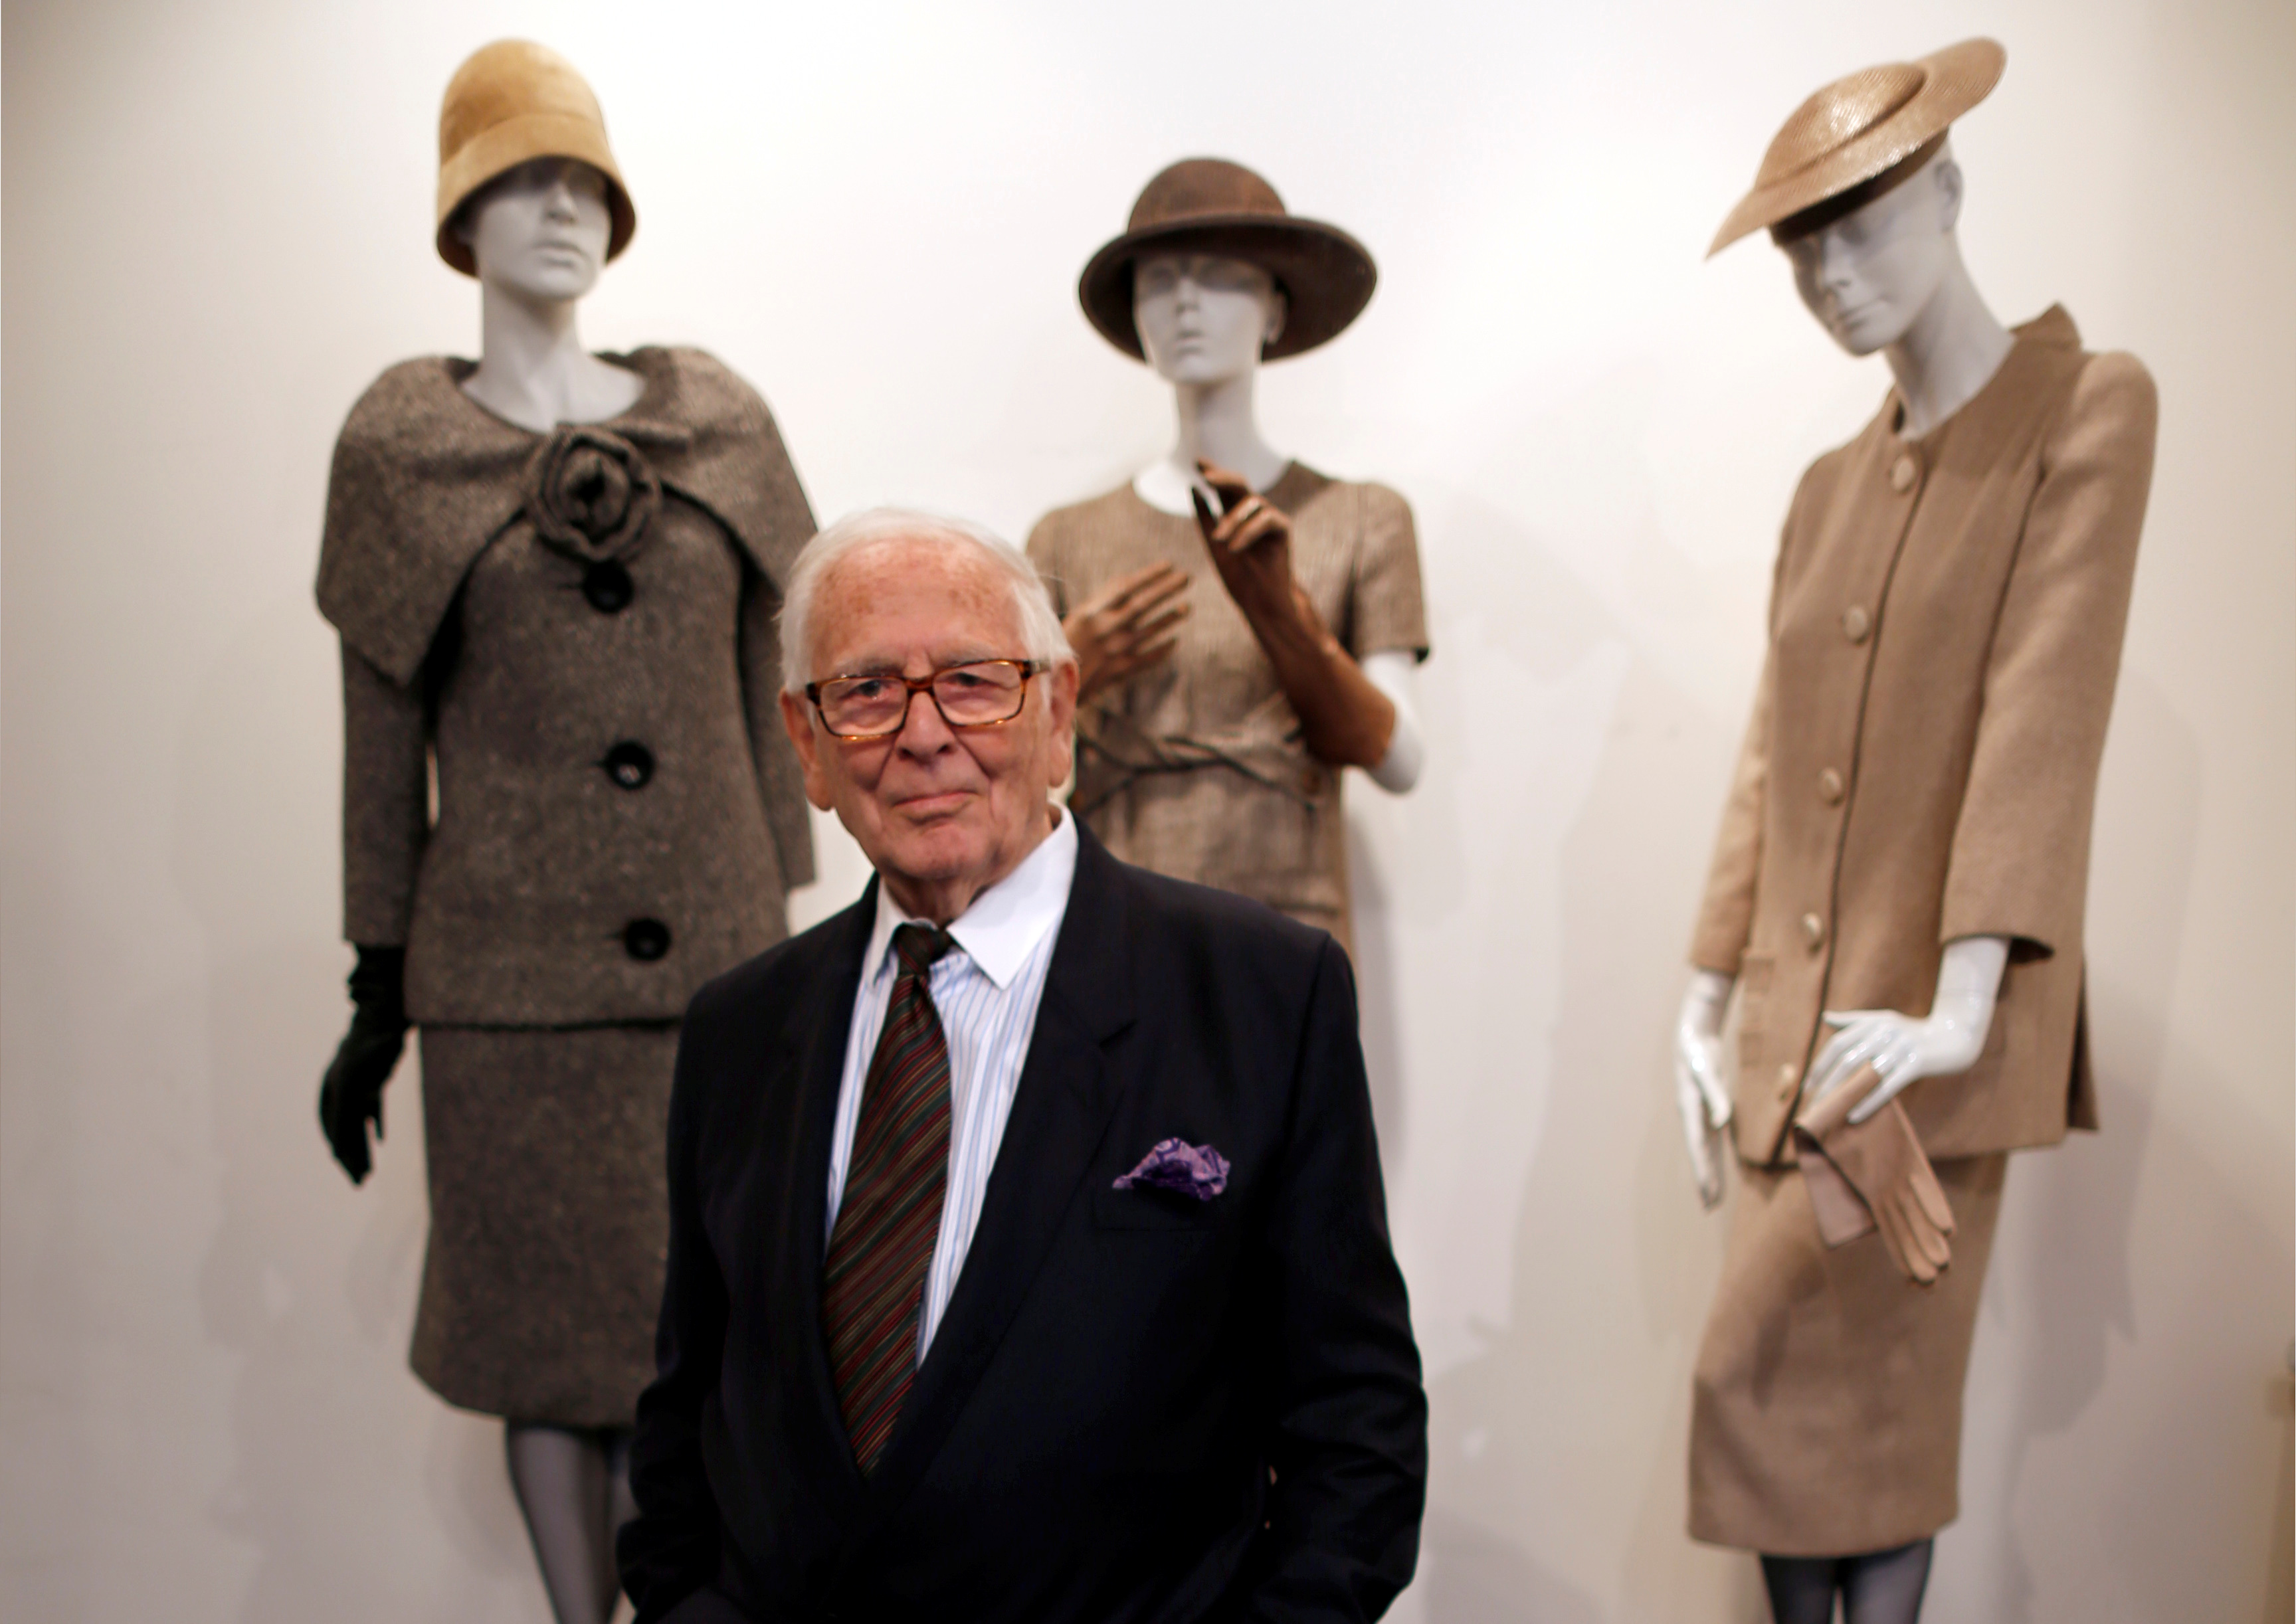 French fashion designer Pierre Cardin poses in front of his 1954-1956-1957 fashion creations in his museum called